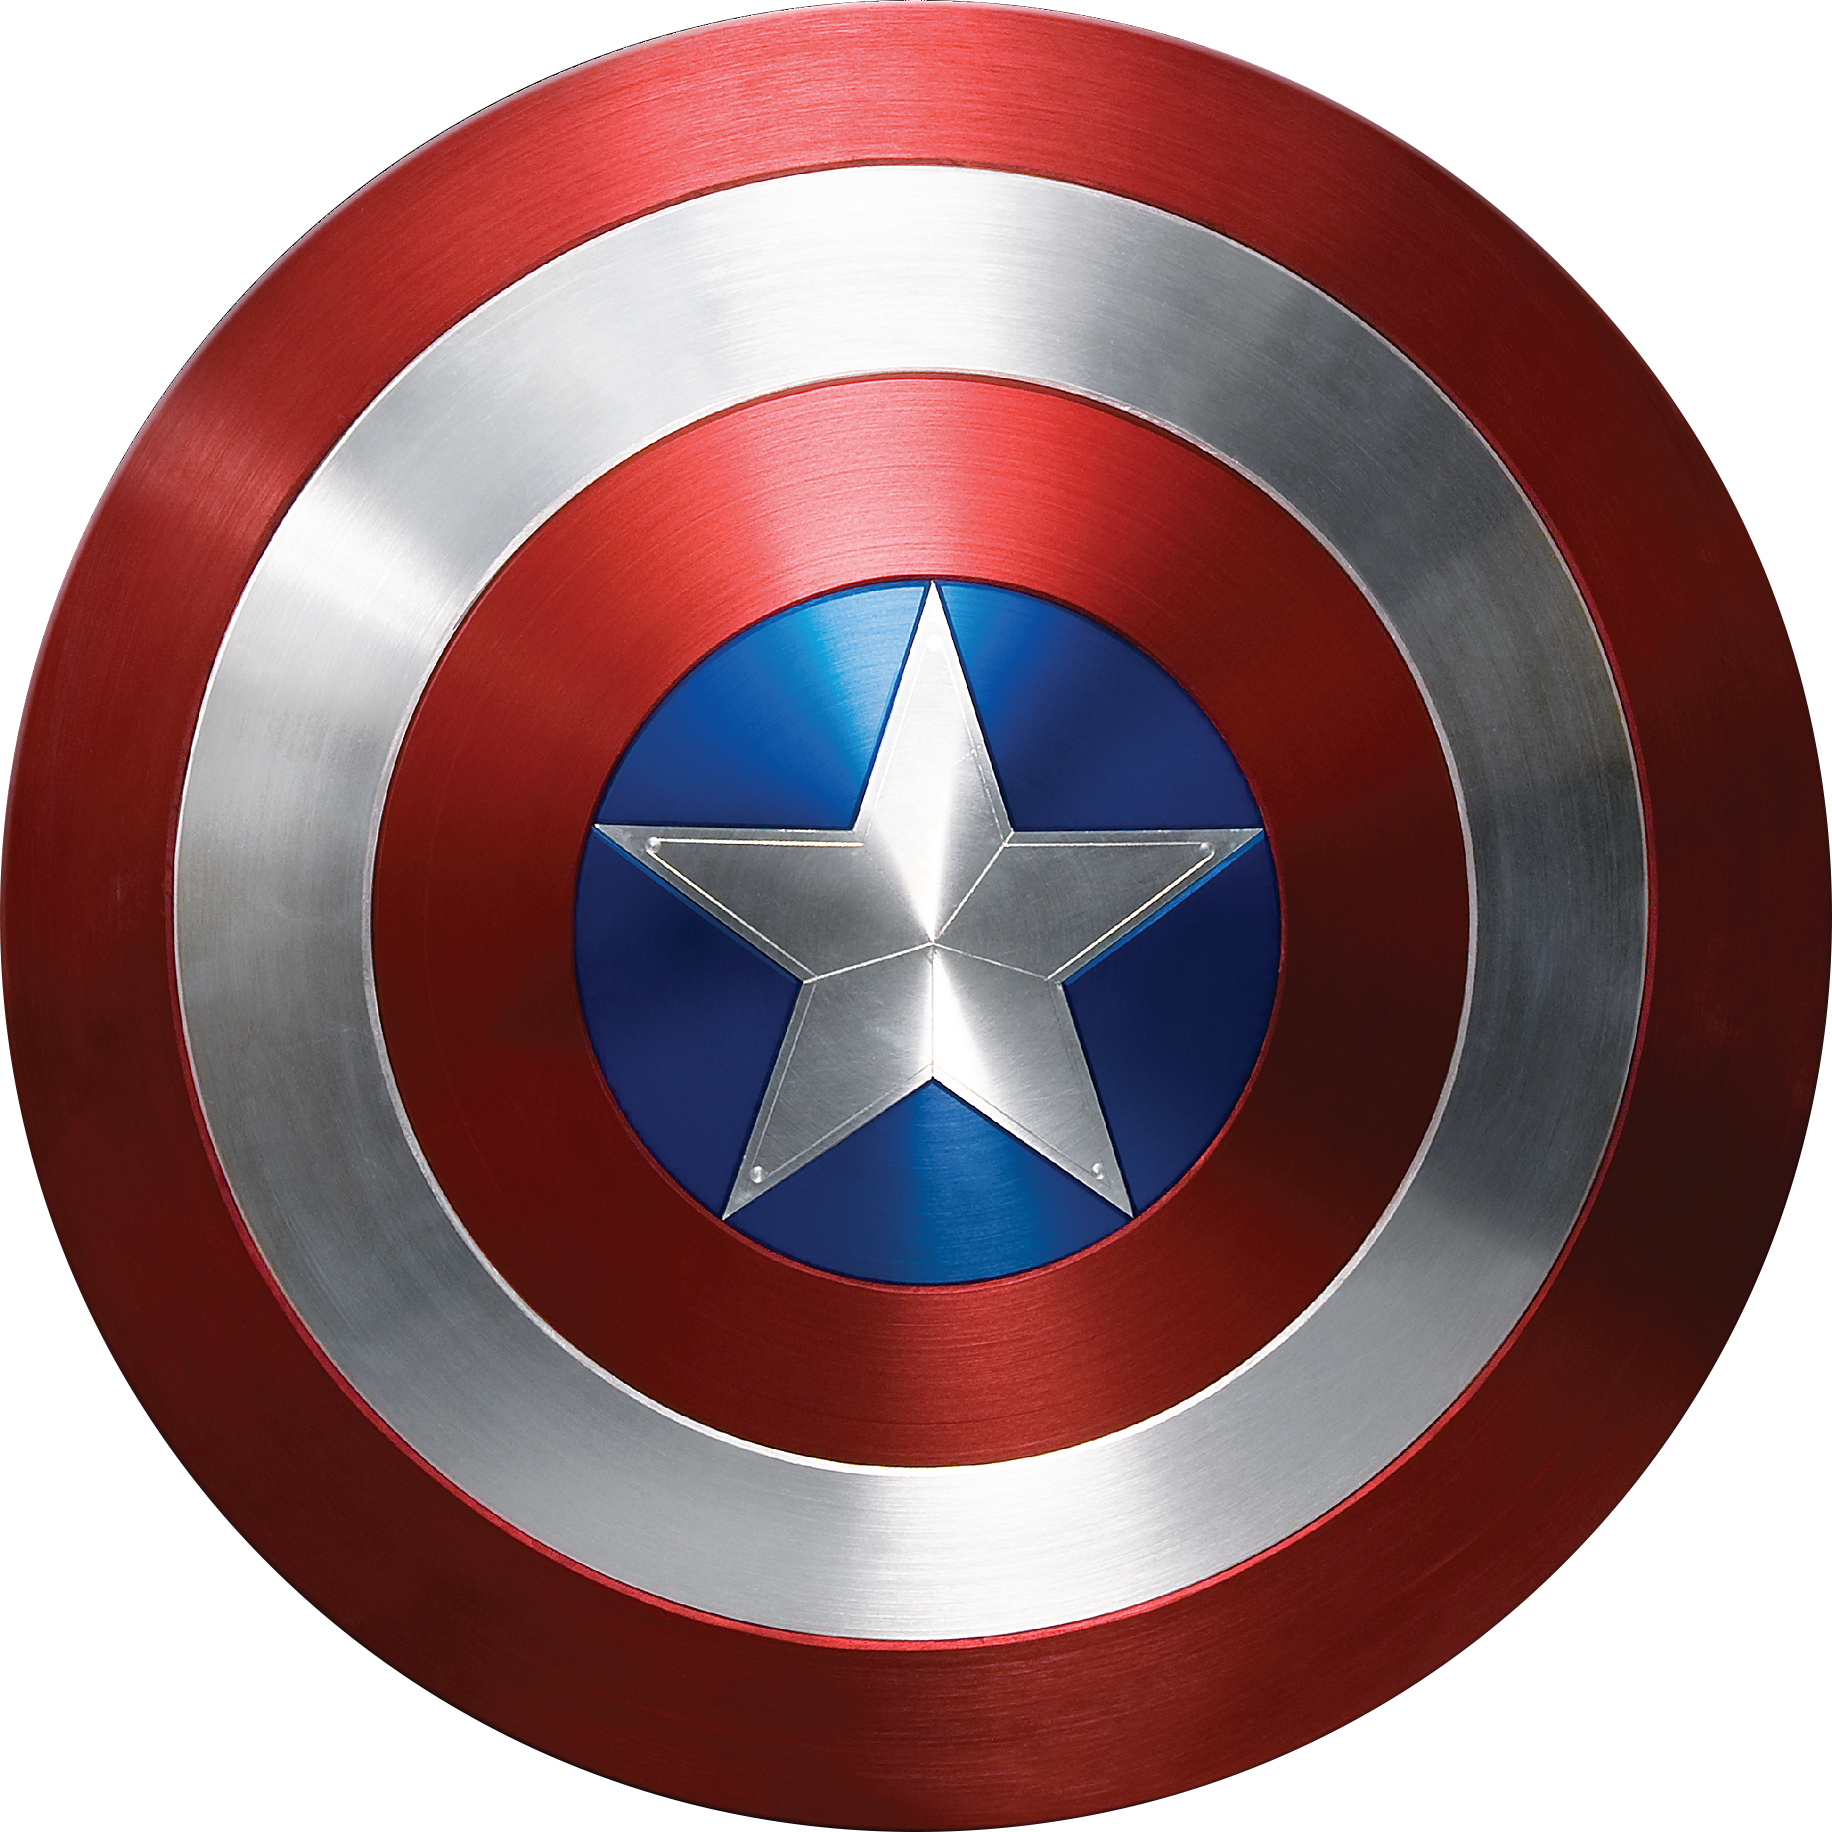 Image america shield cinematic. Captain marvel symbol png picture free stock